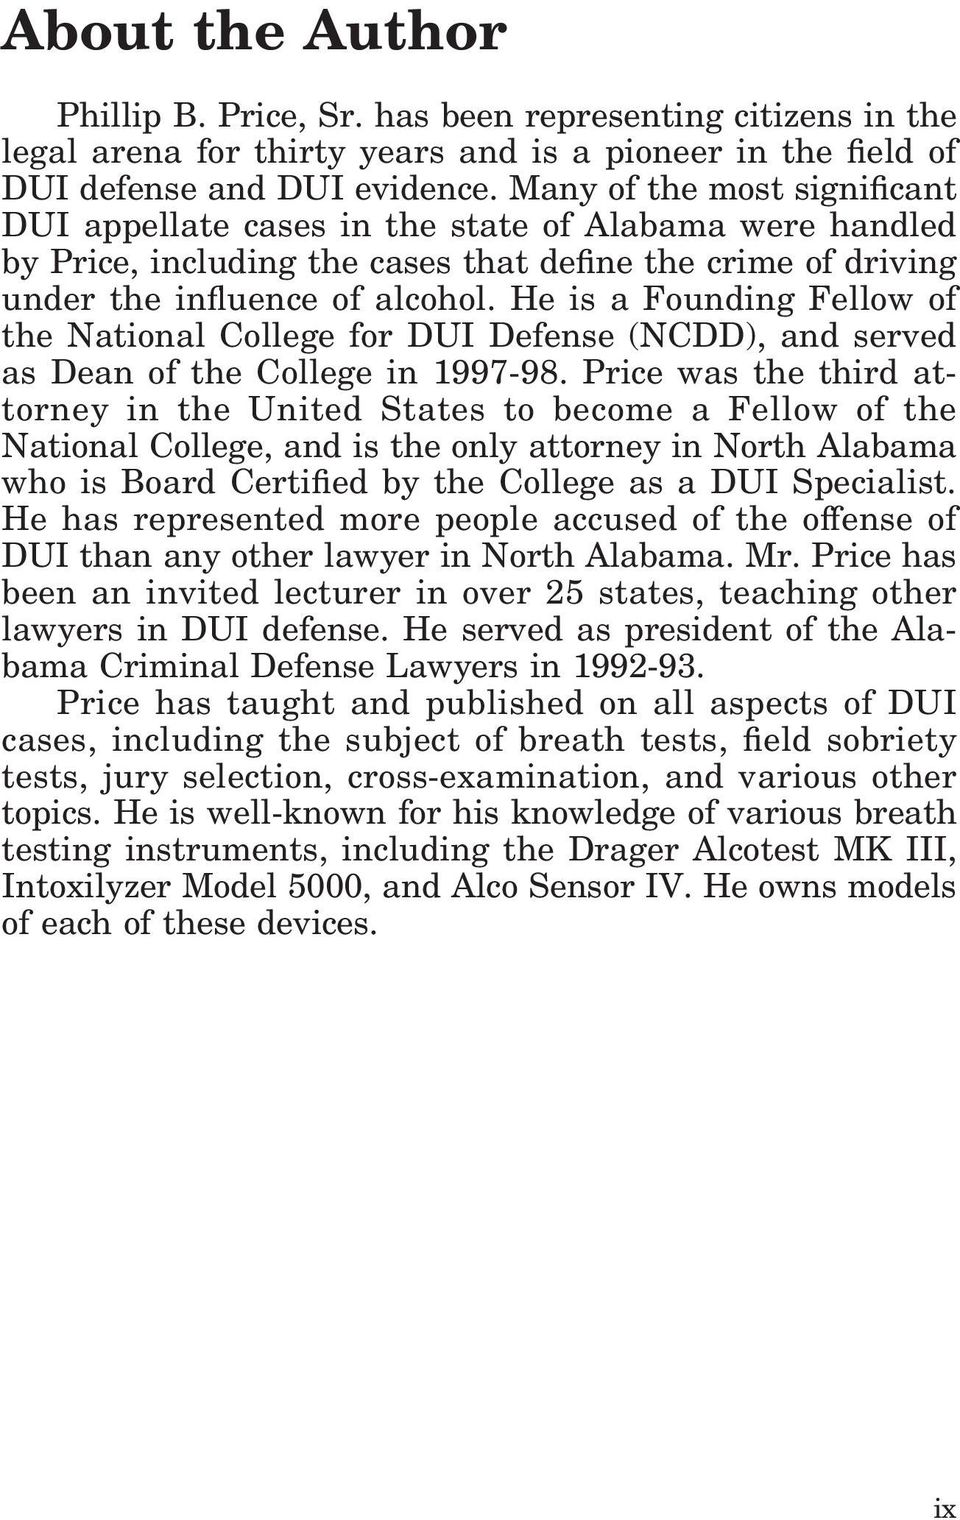 He is a Founding Fellow of the National College for DUI Defense (NCDD), and served as Dean of the College in 1997-98.